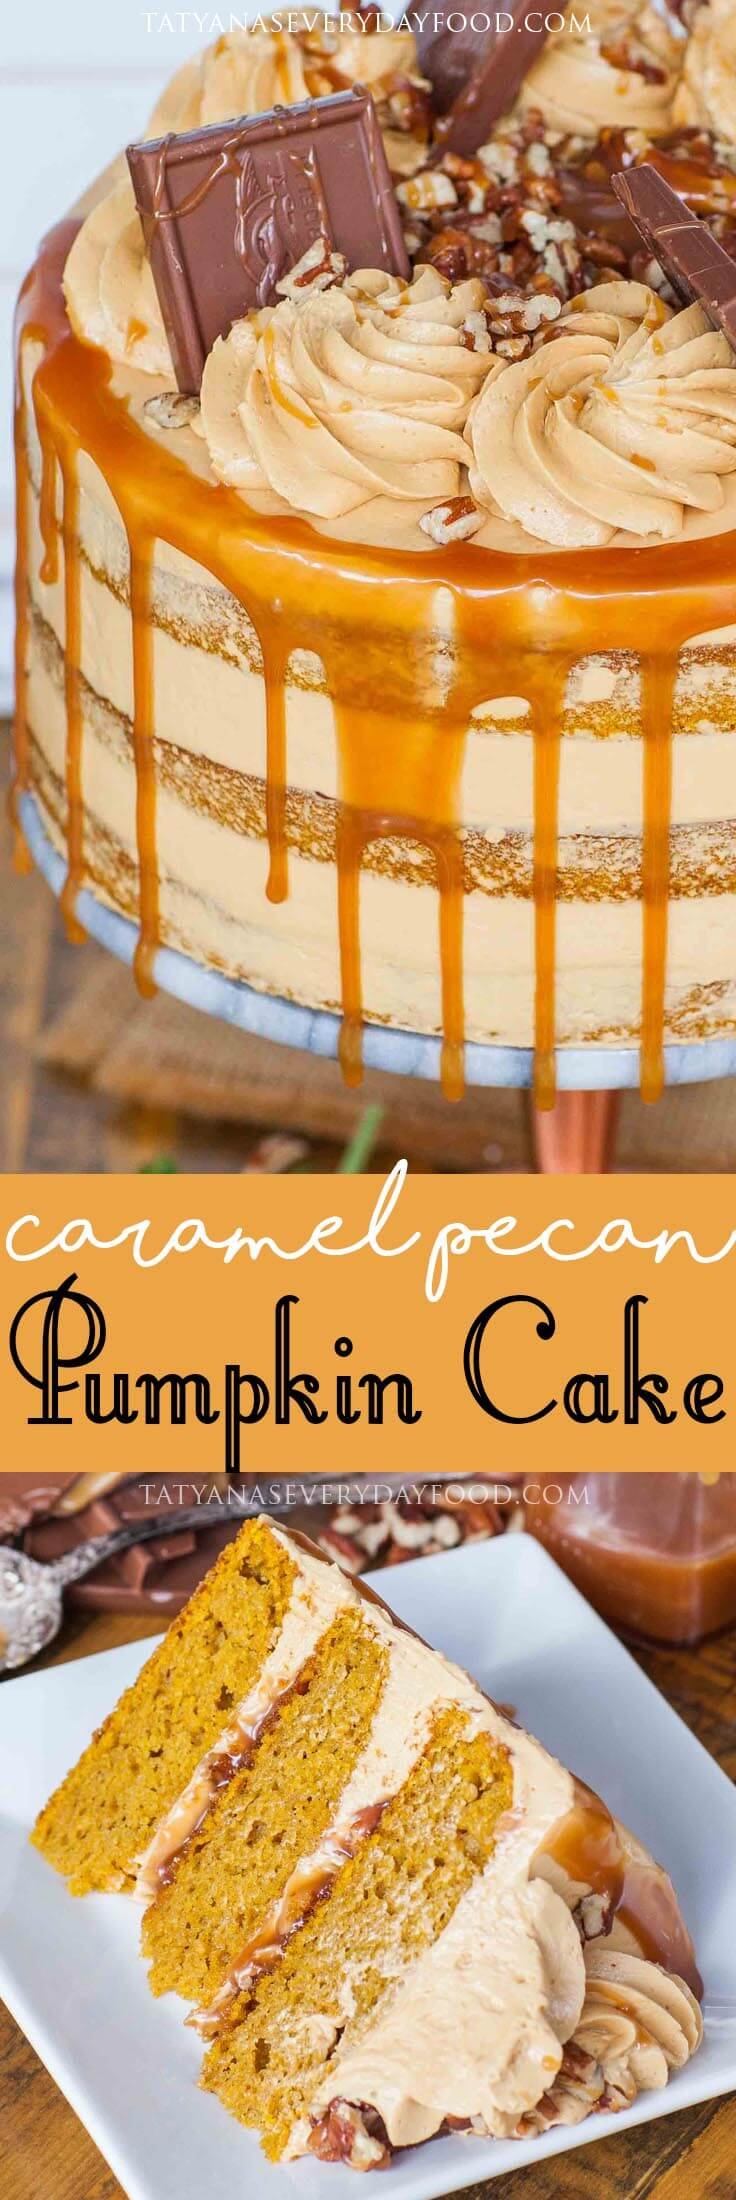 Caramel Pecan Pumpkin Cake recipe with video